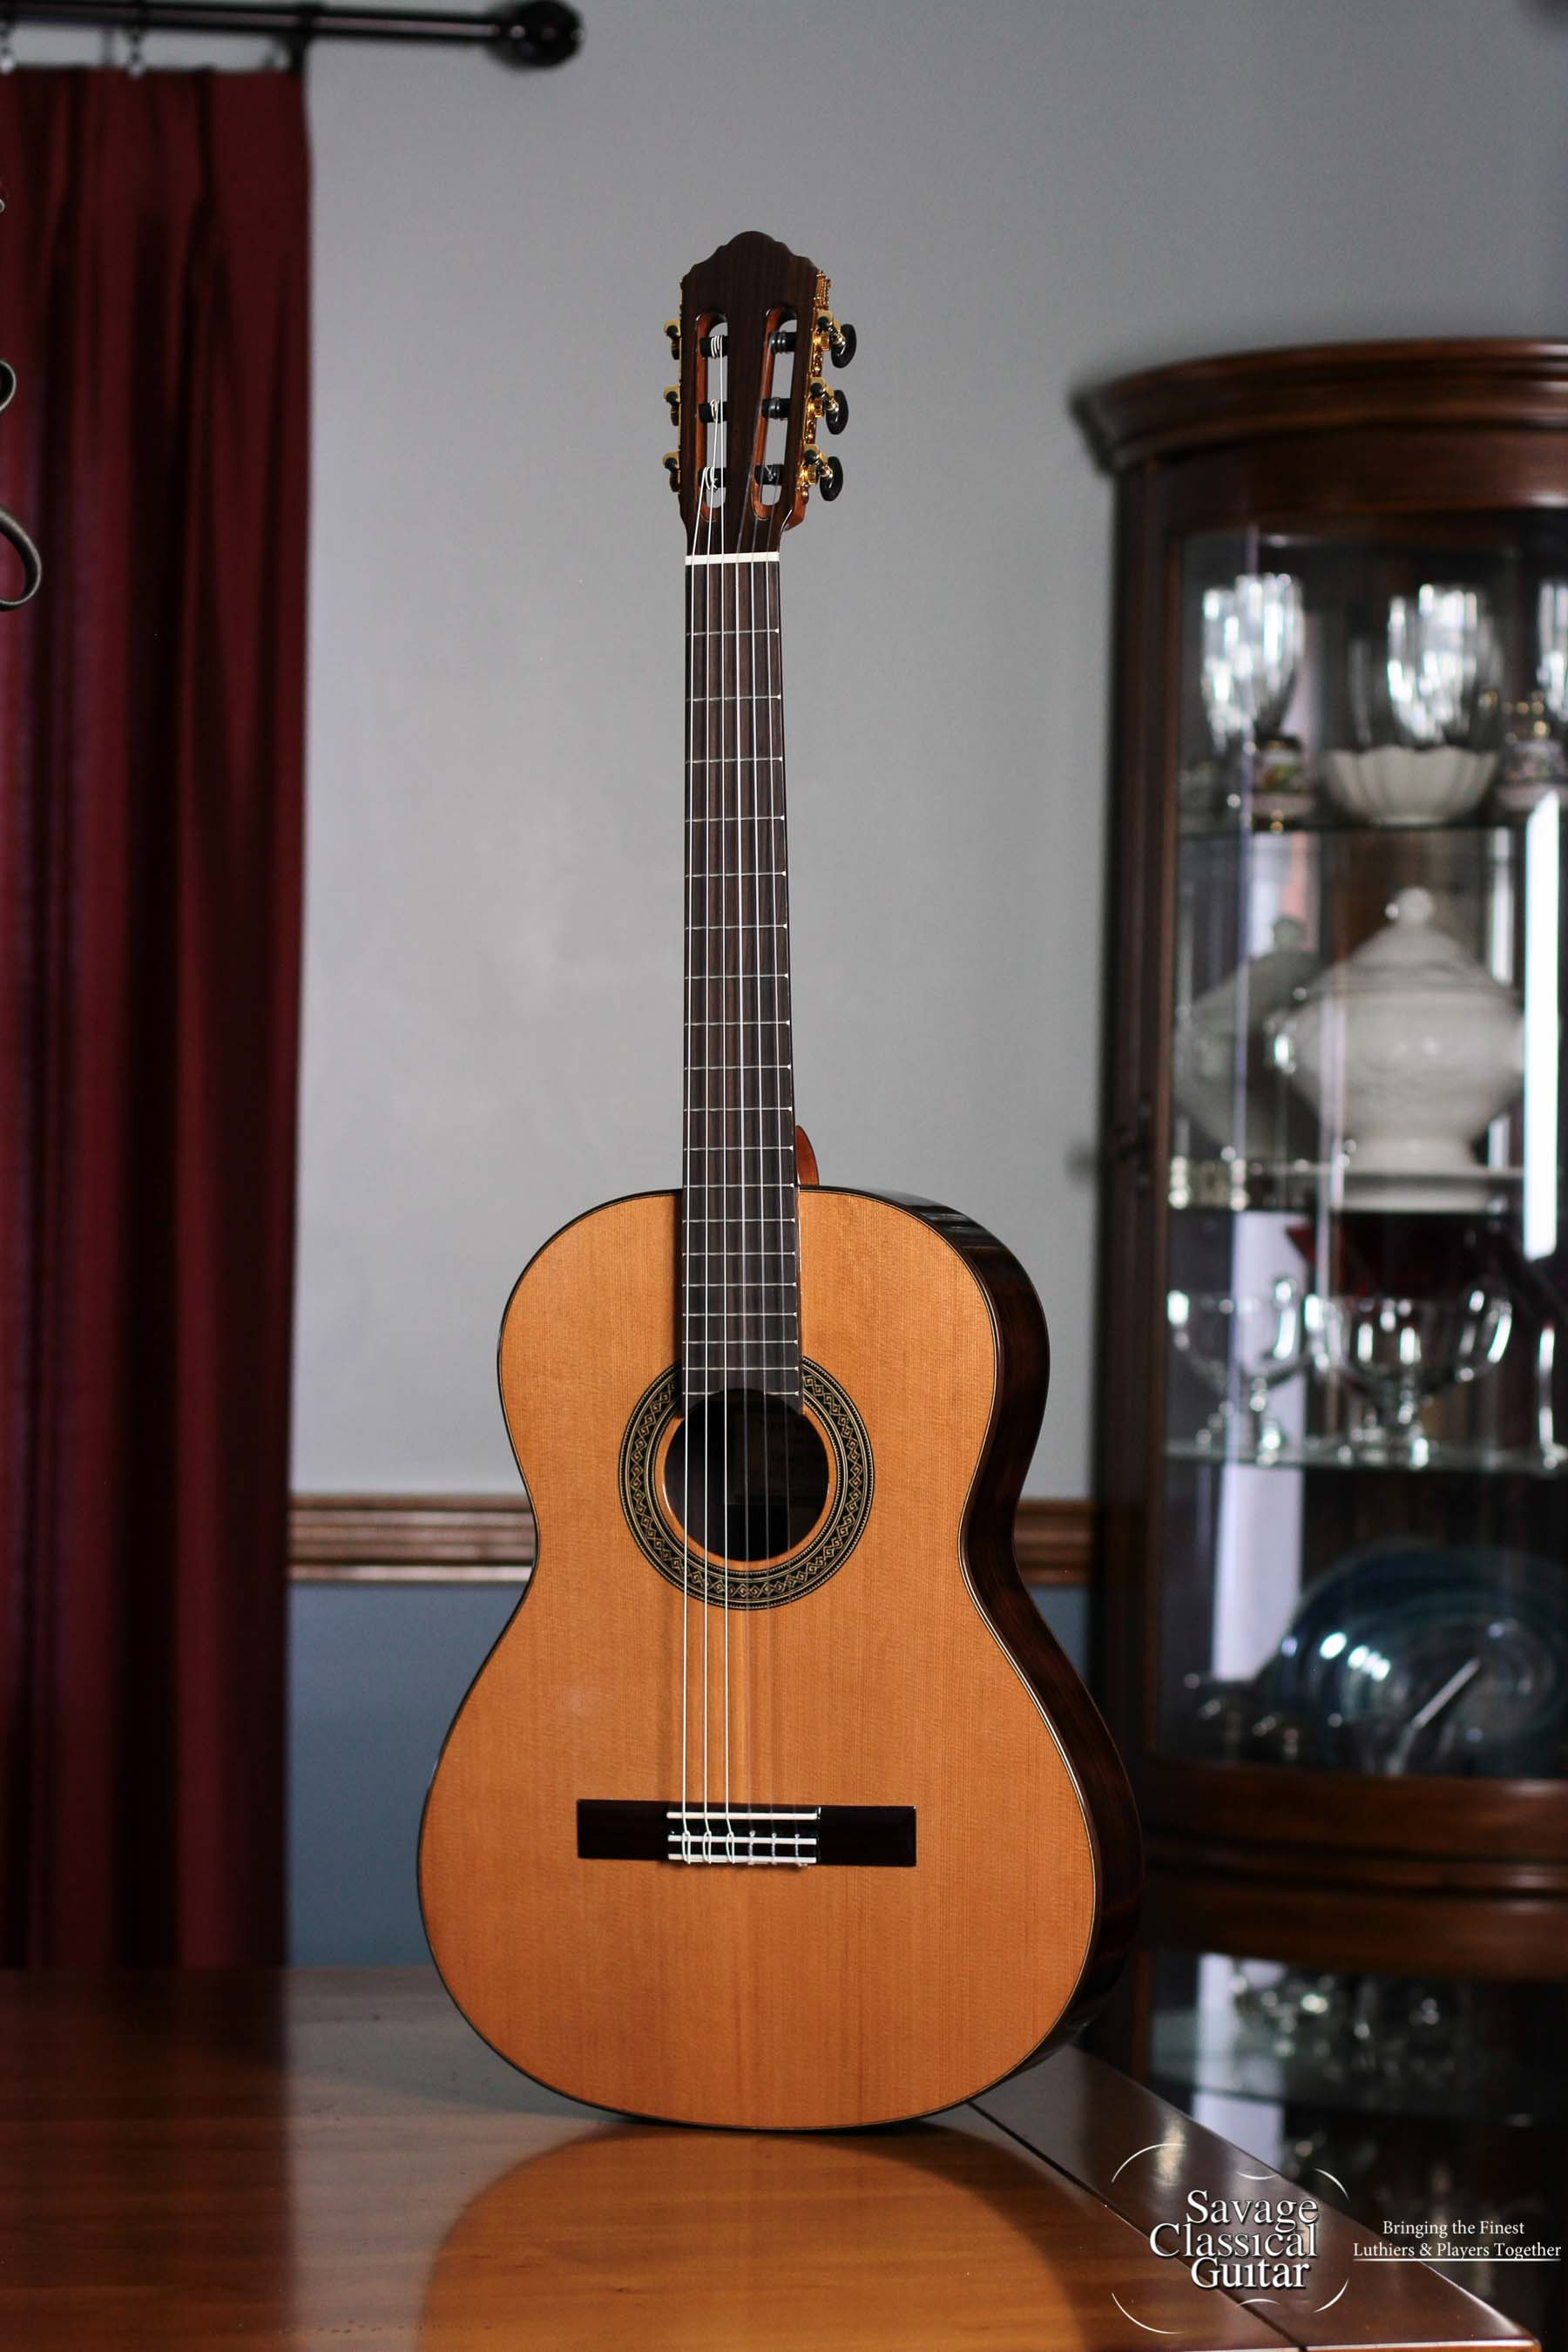 hill classical guitar estudio offered by savage classical guitar. Black Bedroom Furniture Sets. Home Design Ideas